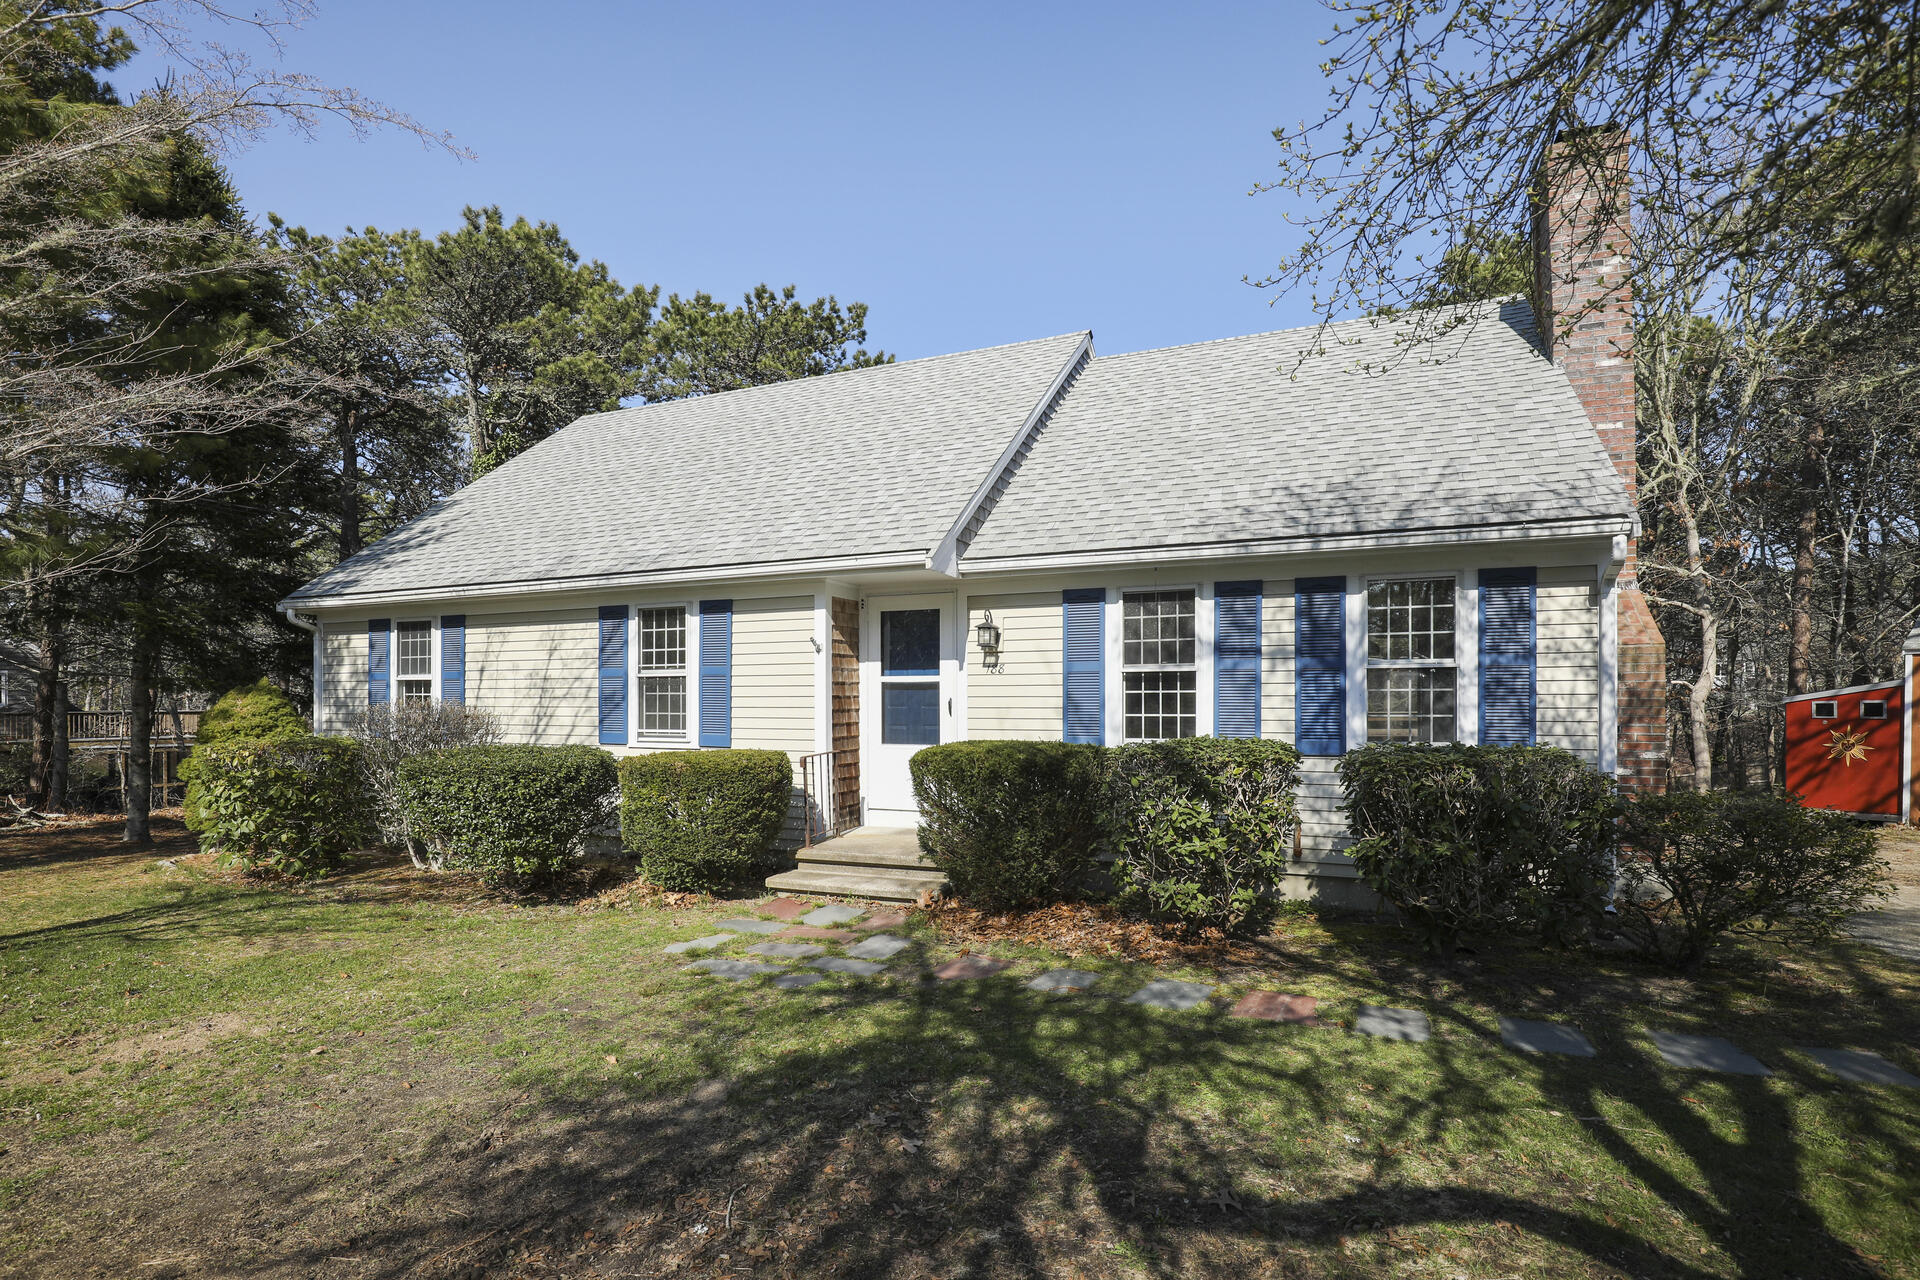 188 Indian Hill Road, Chatham MA, 02633 sales details